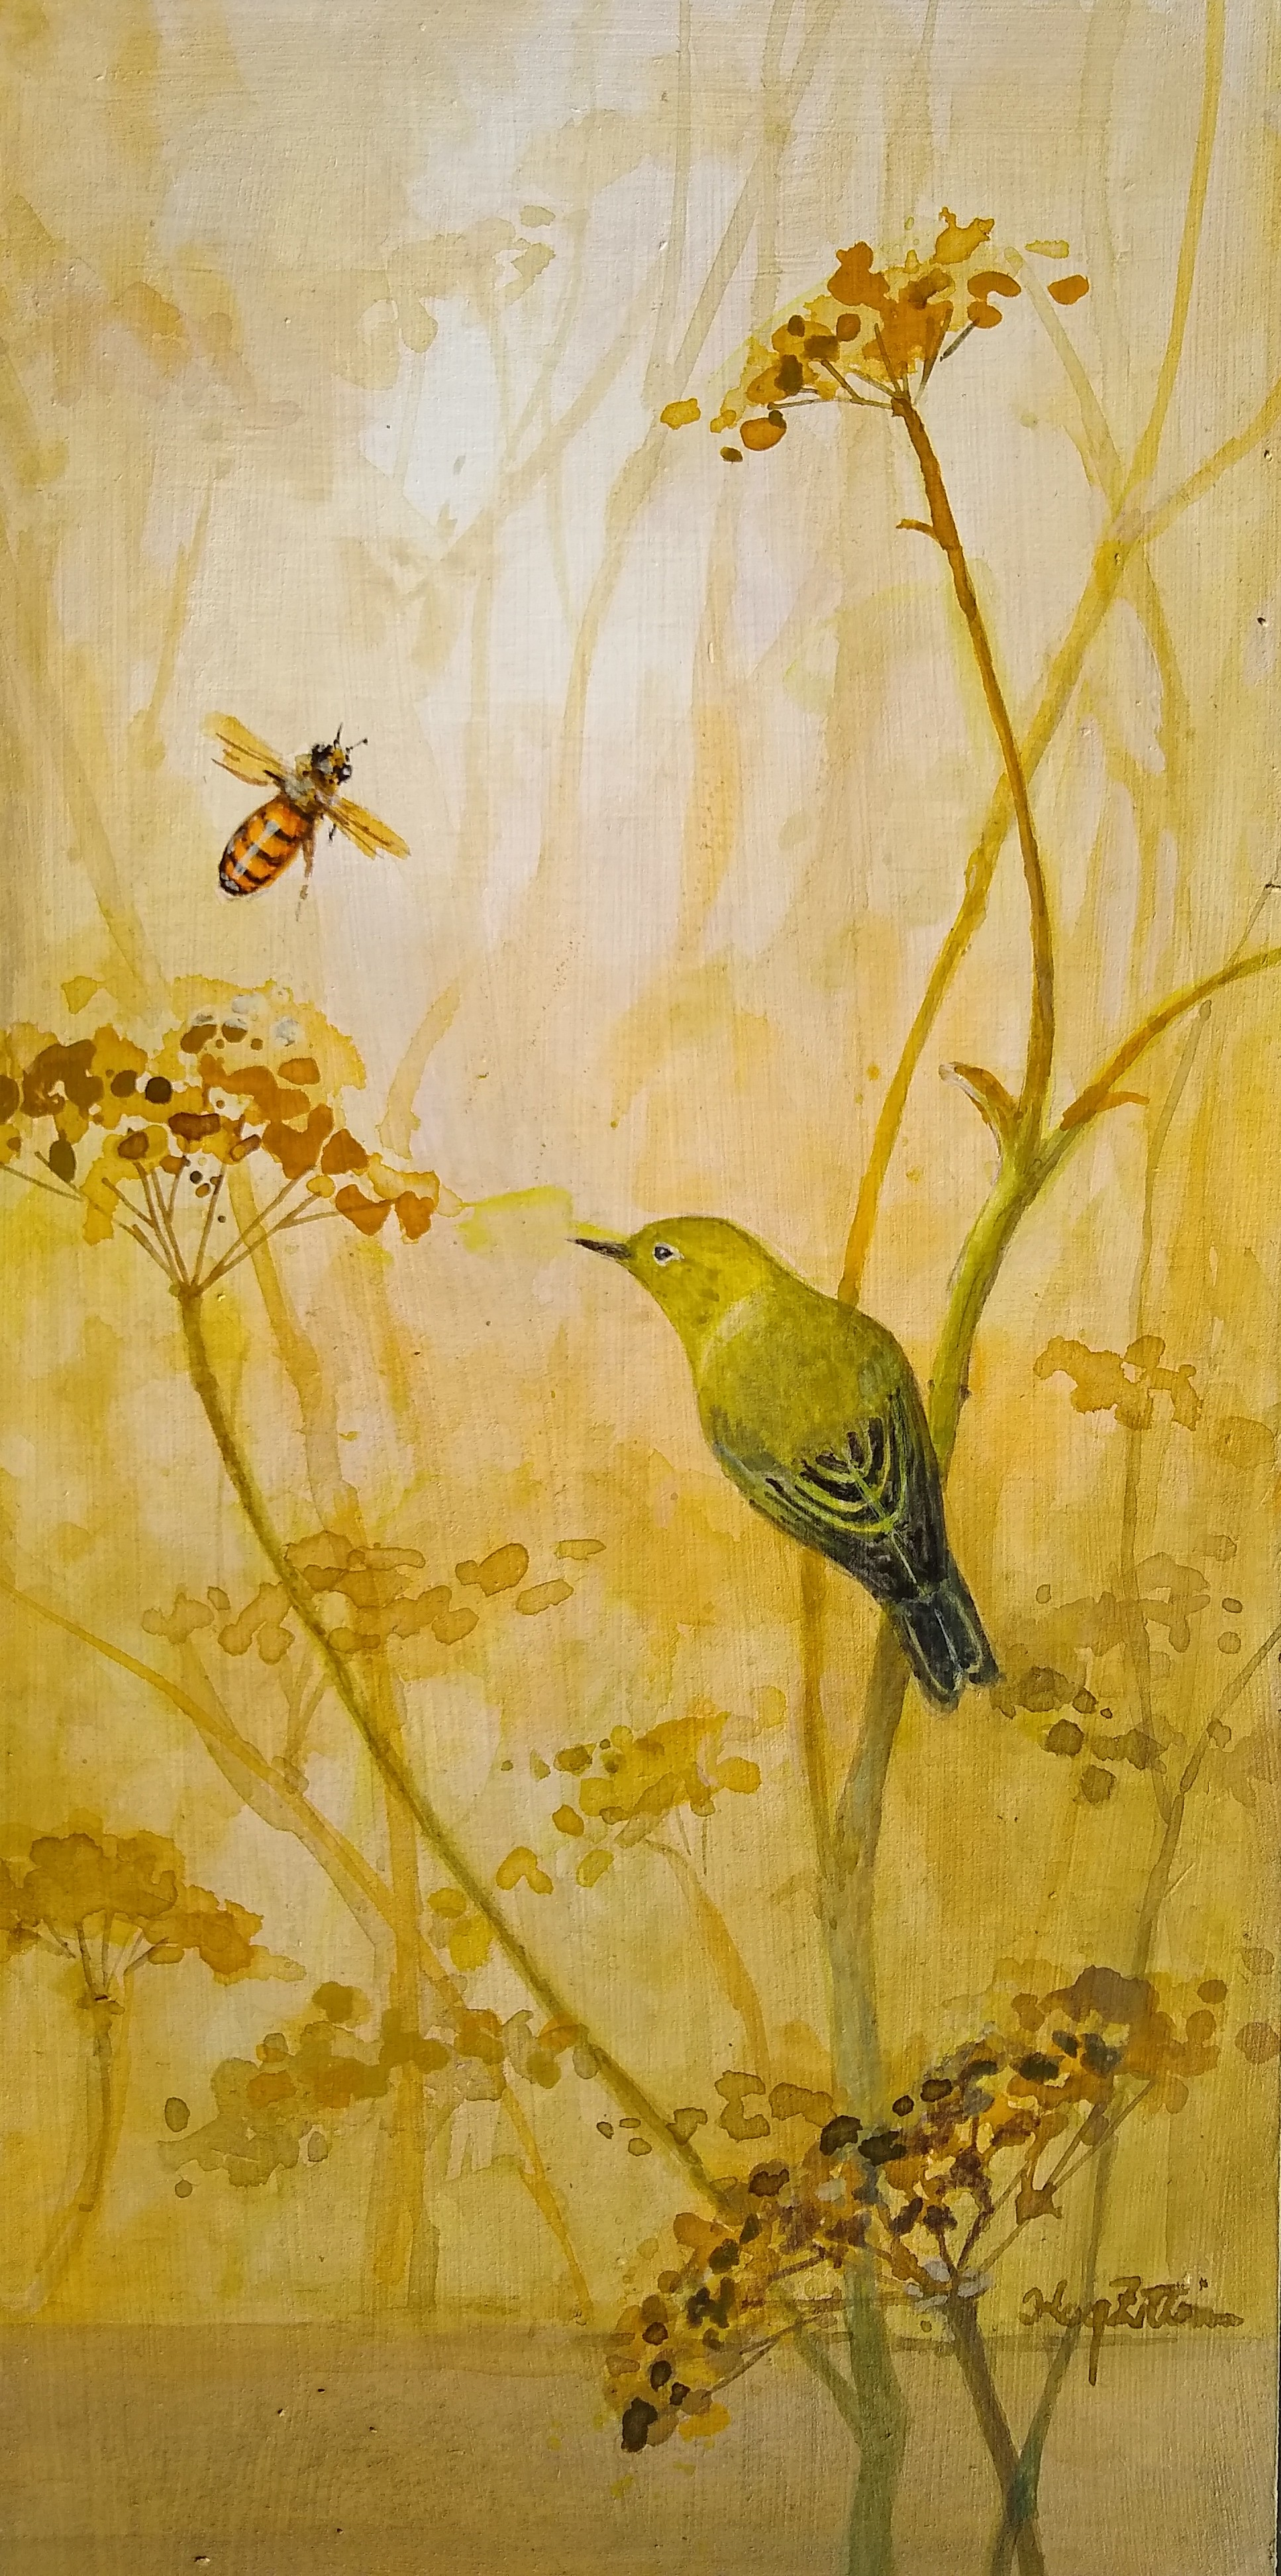 "Yellow Warbler and Fennel 12"" x 6"" acrylic on wood panel"